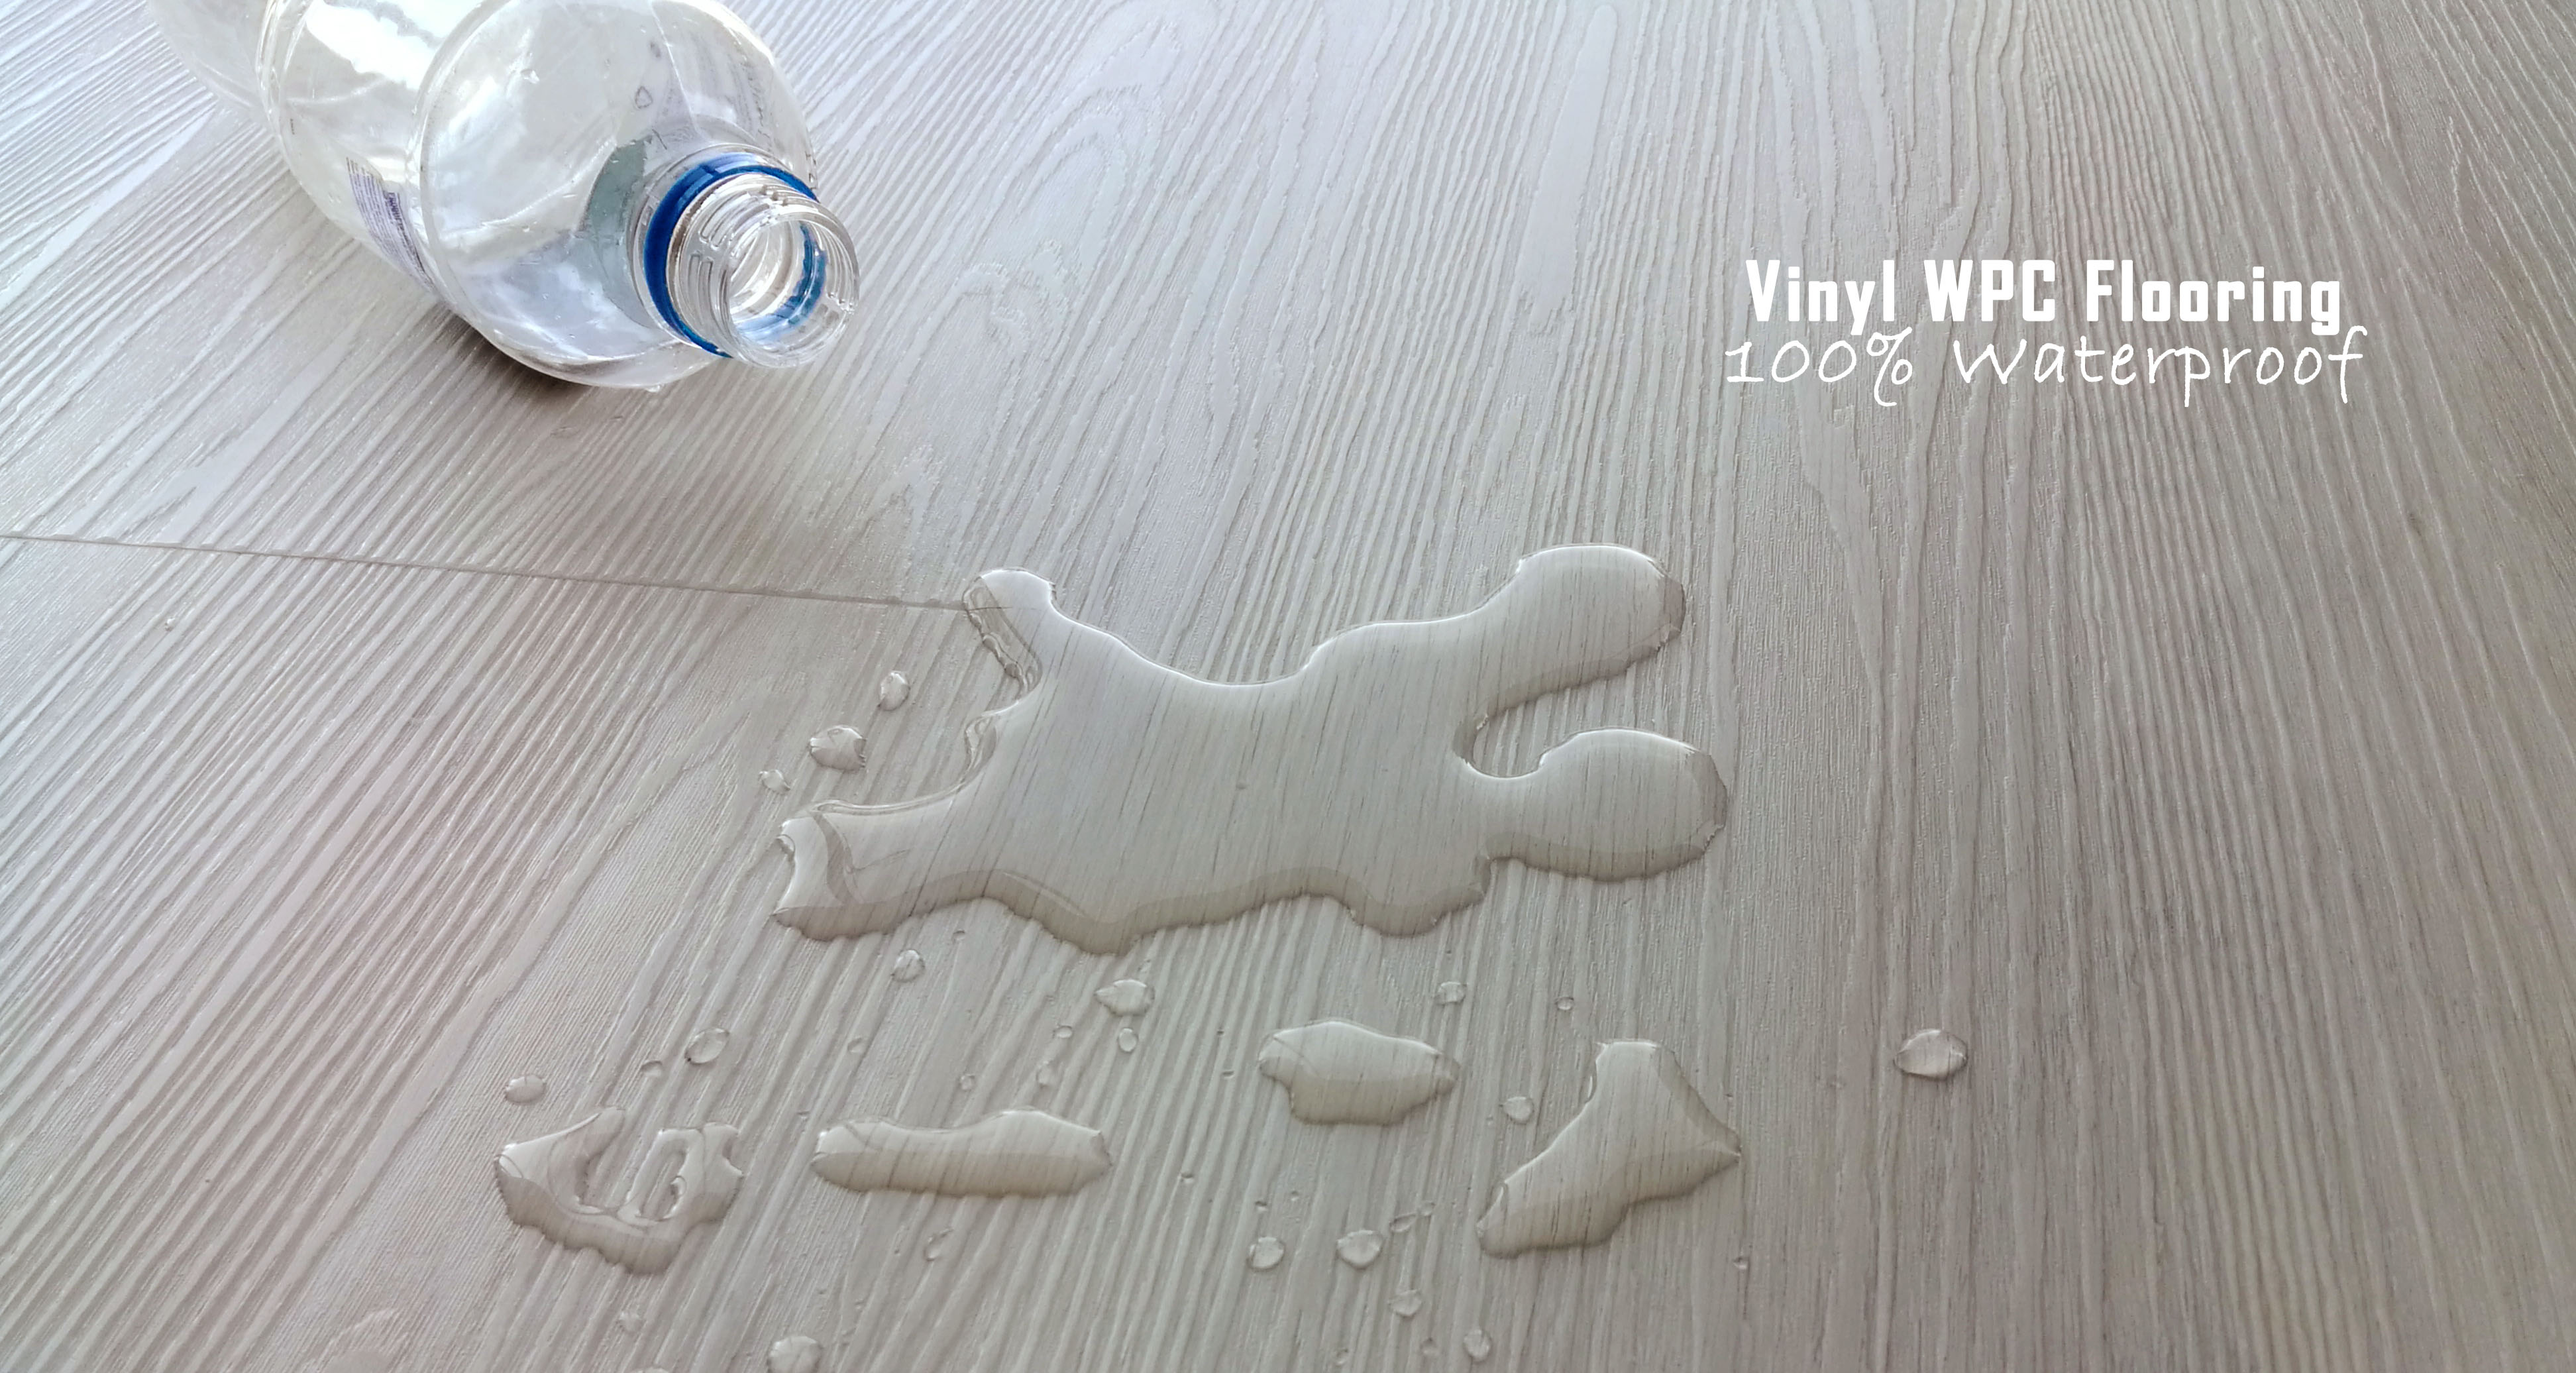 Vinyl-WPC-Flooring-Plank-Waterproof